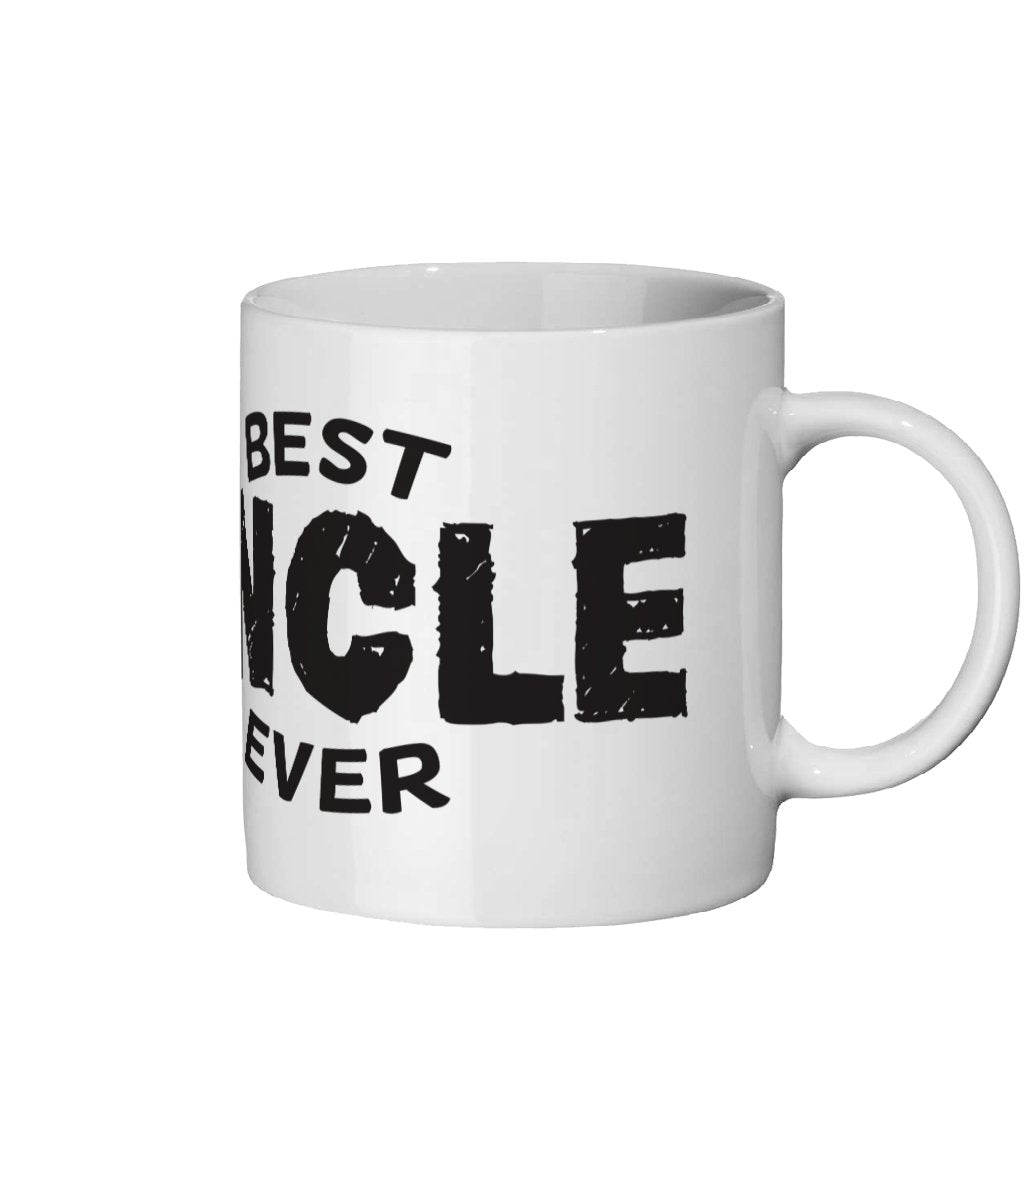 Best Uncle Ever Ceramic Mug 11oz - The Gift Project